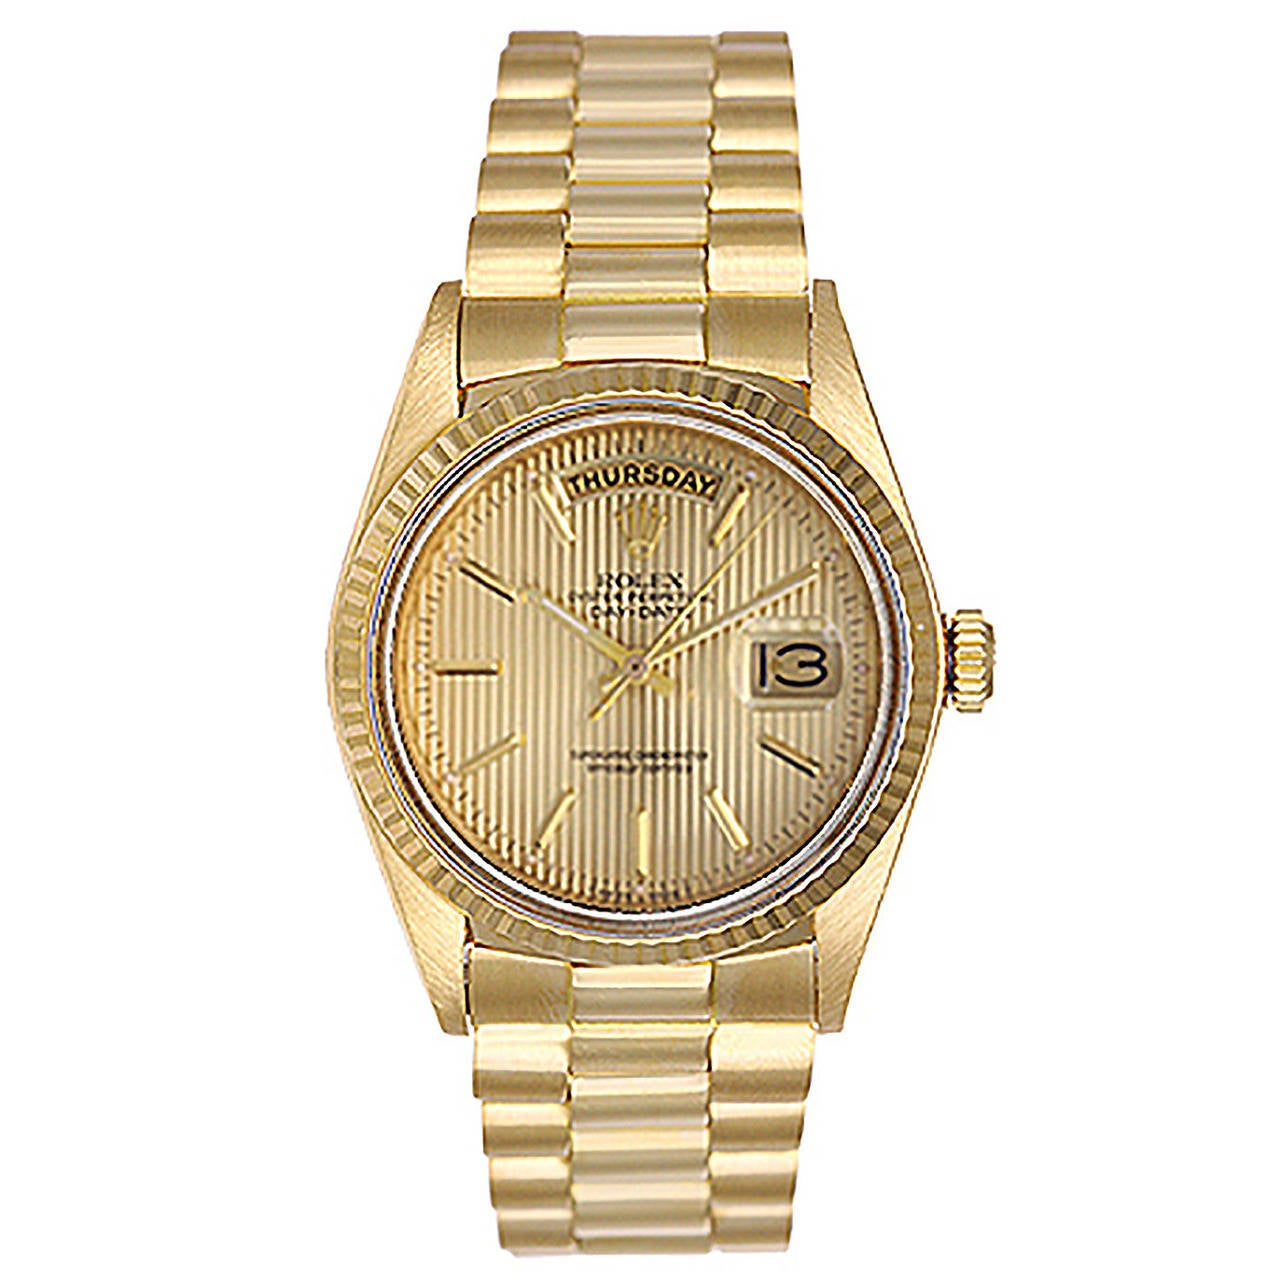 Rolex Yellow Gold Day-Date President Wristwatch Ref 18038